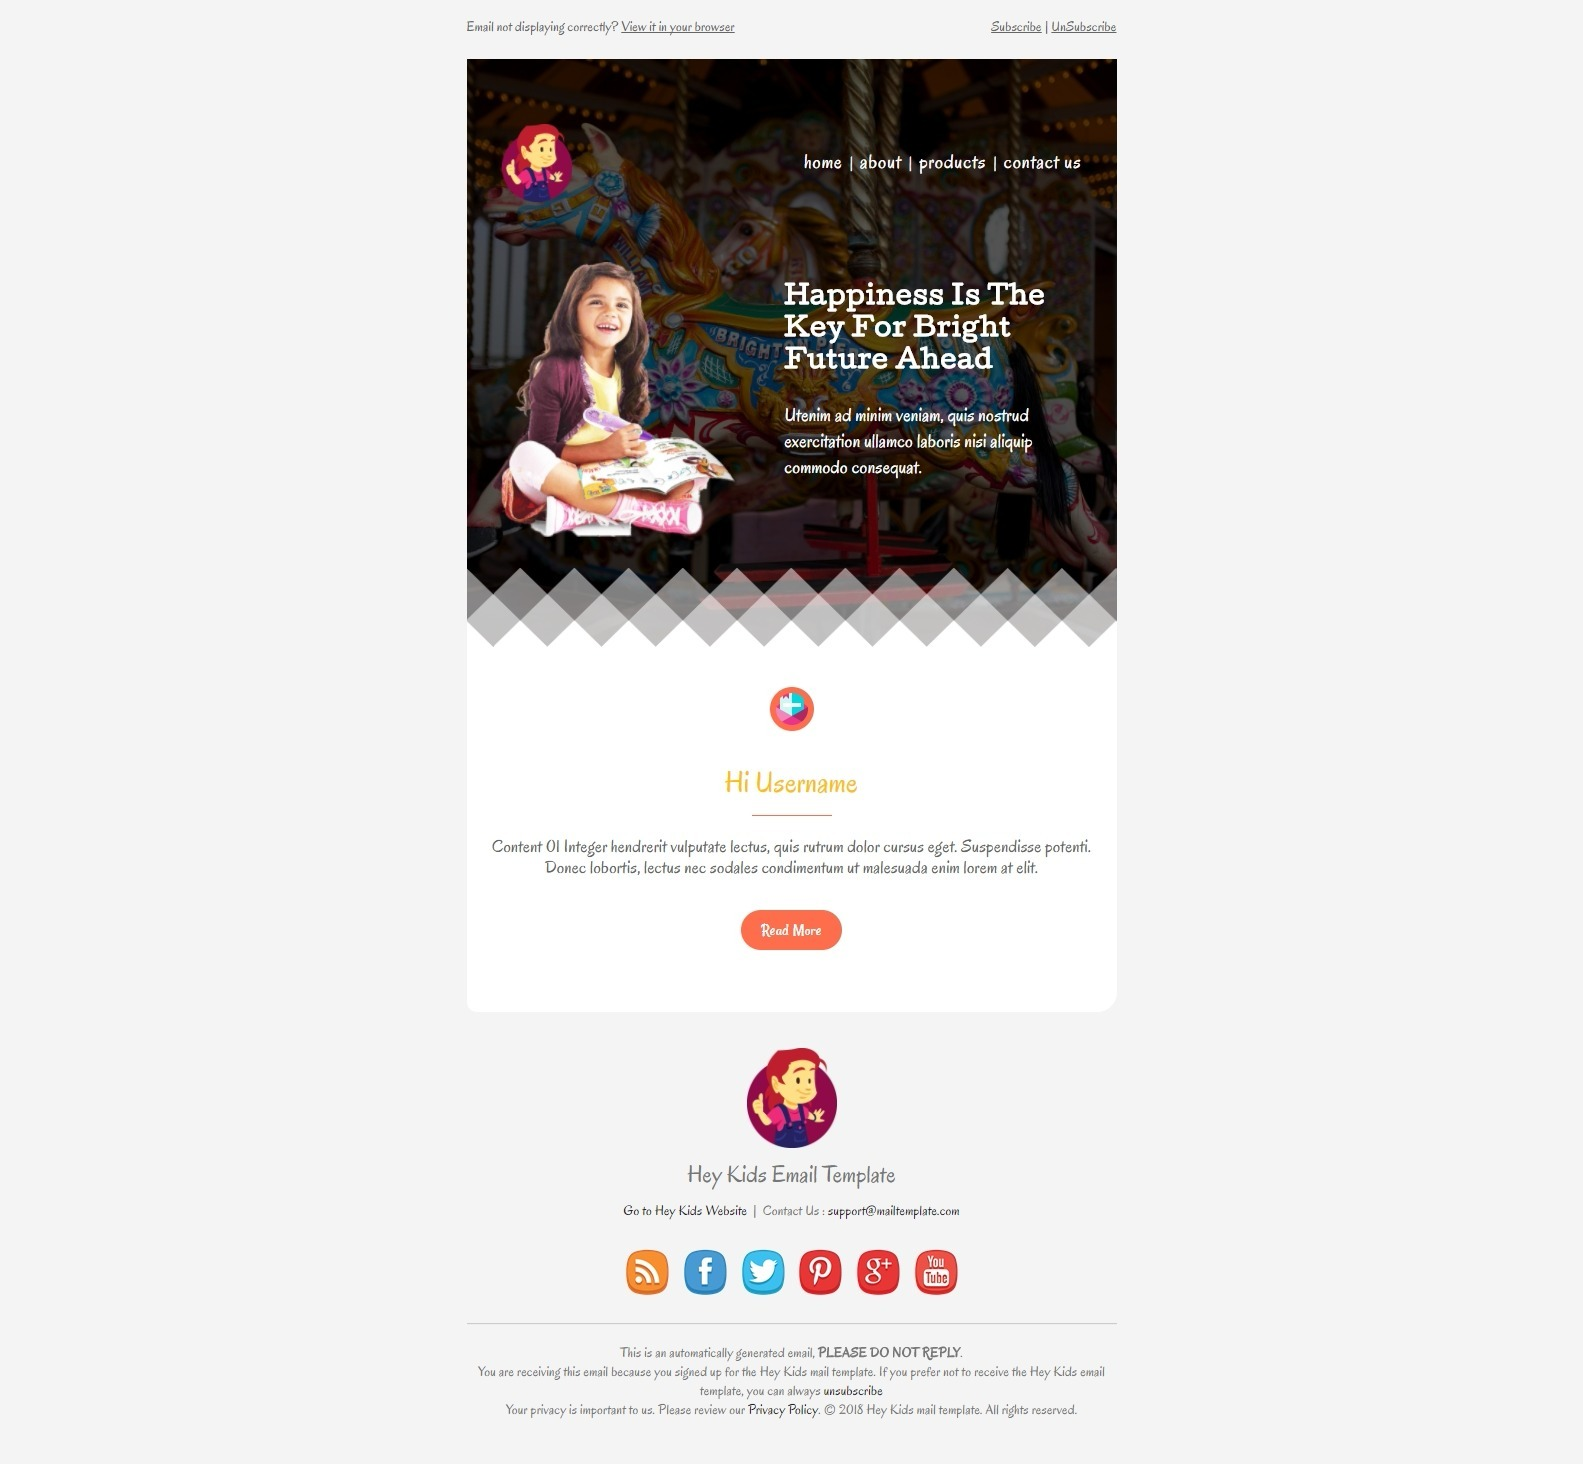 business meeting invitation email template%0A Hey Kids  Email Template by bnrcreativelab   ThemeForest